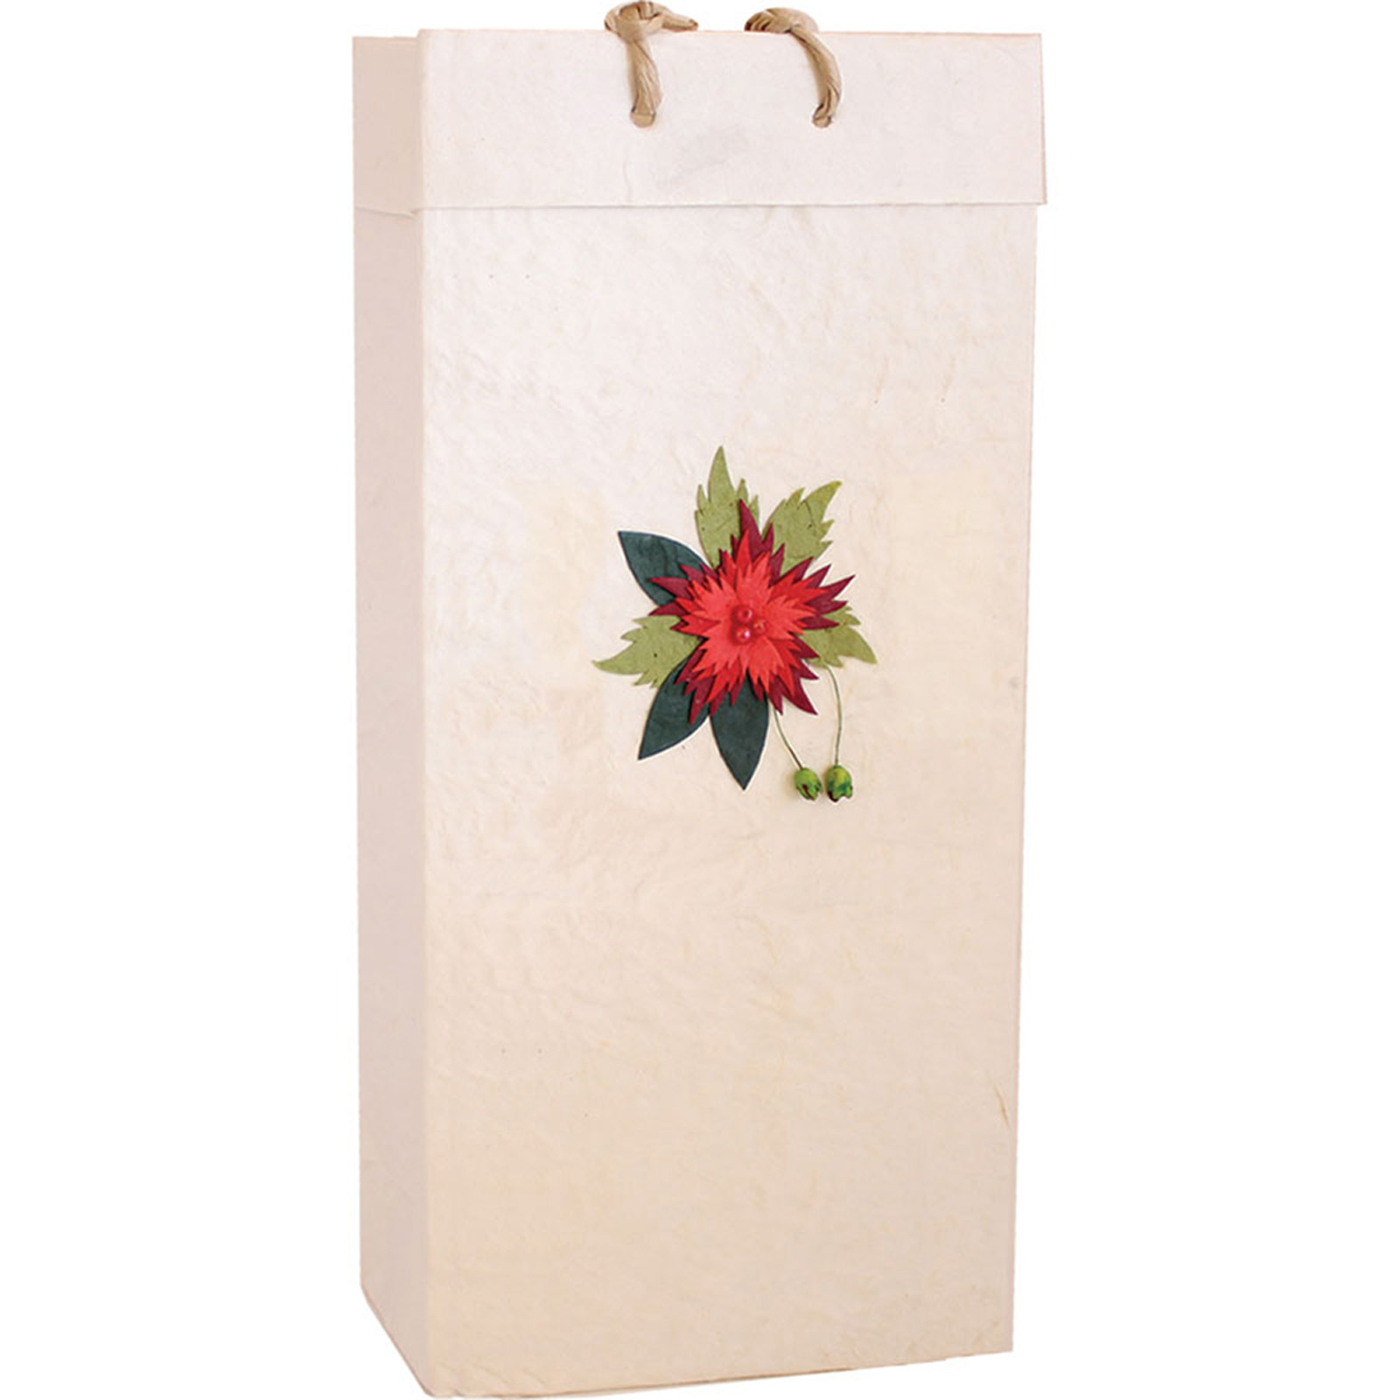 Olive Oil Gift Bags - Red Flower - Georgetown Olive Oil Co.